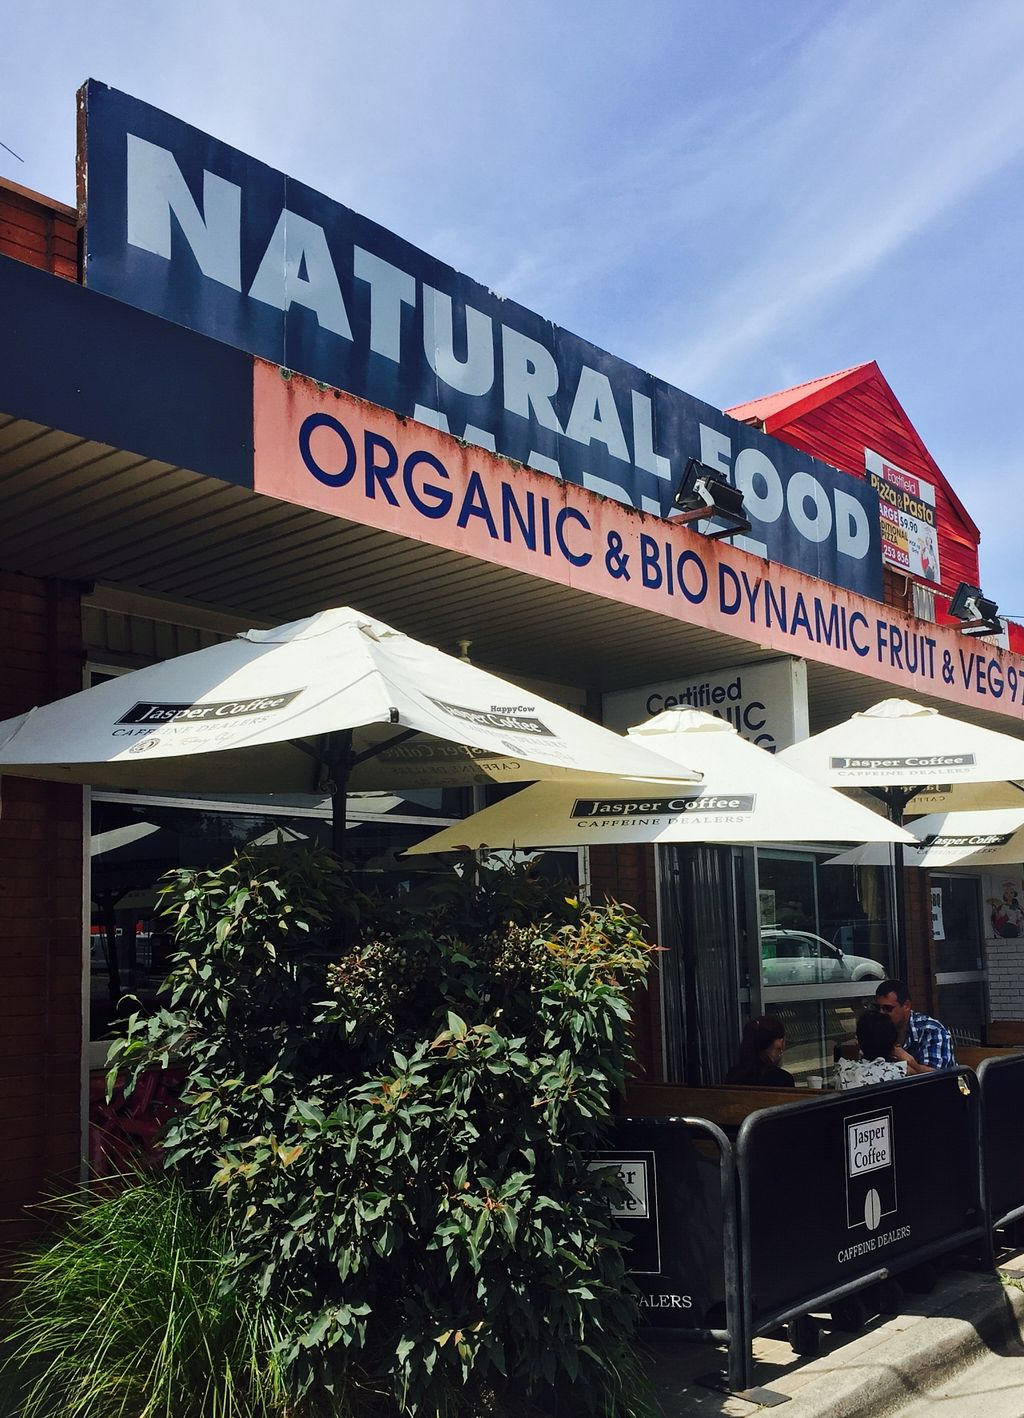 """Photo of Eastfield Natural Foods  by <a href=""""/members/profile/karlaess"""">karlaess</a> <br/>Exterior <br/> February 9, 2016  - <a href='/contact/abuse/image/65580/135649'>Report</a>"""